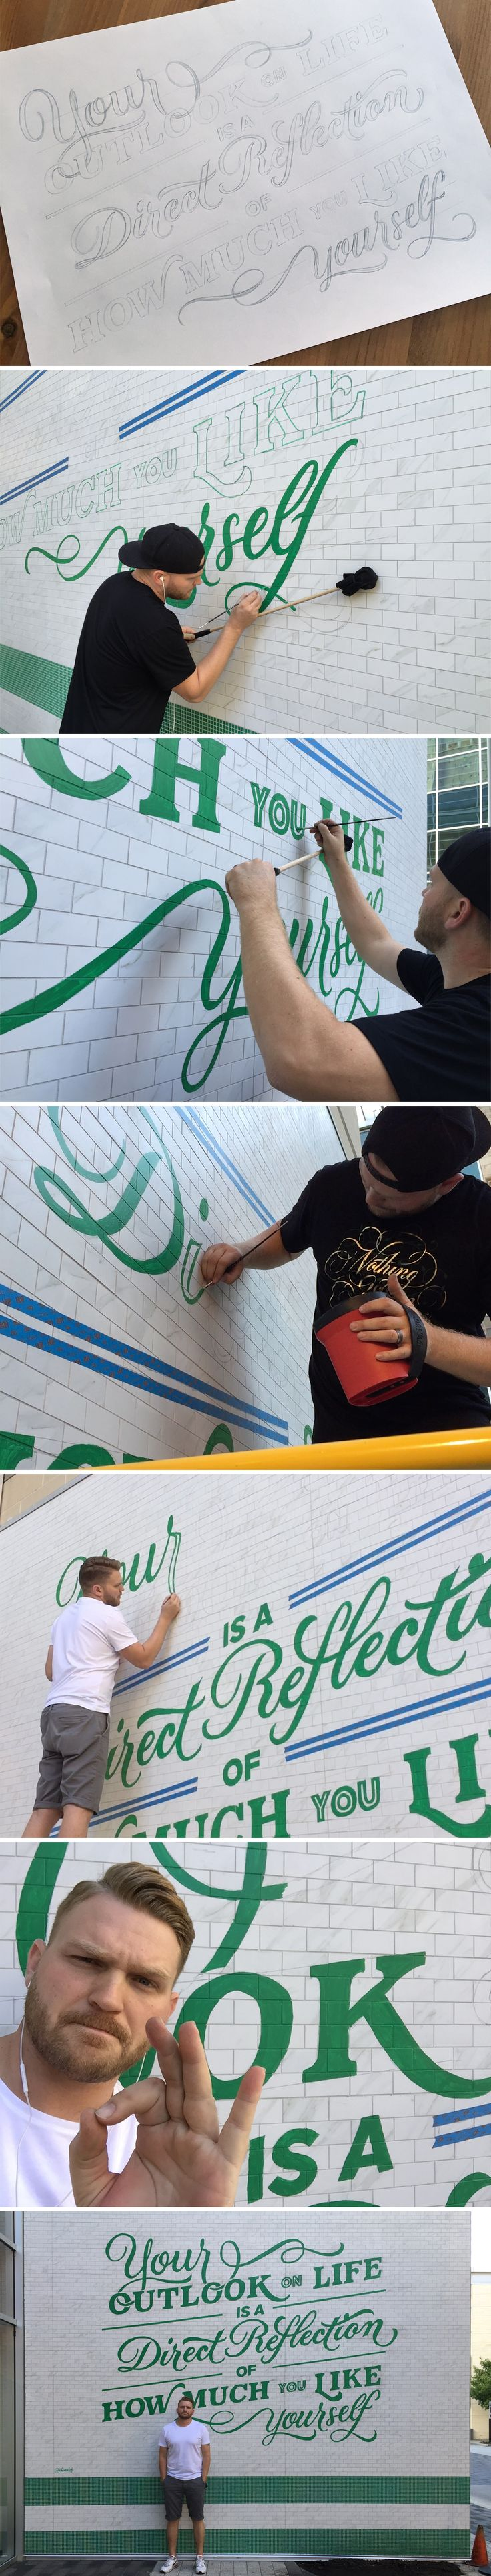 Lululemon-mural-process | Now he just needs some moss.